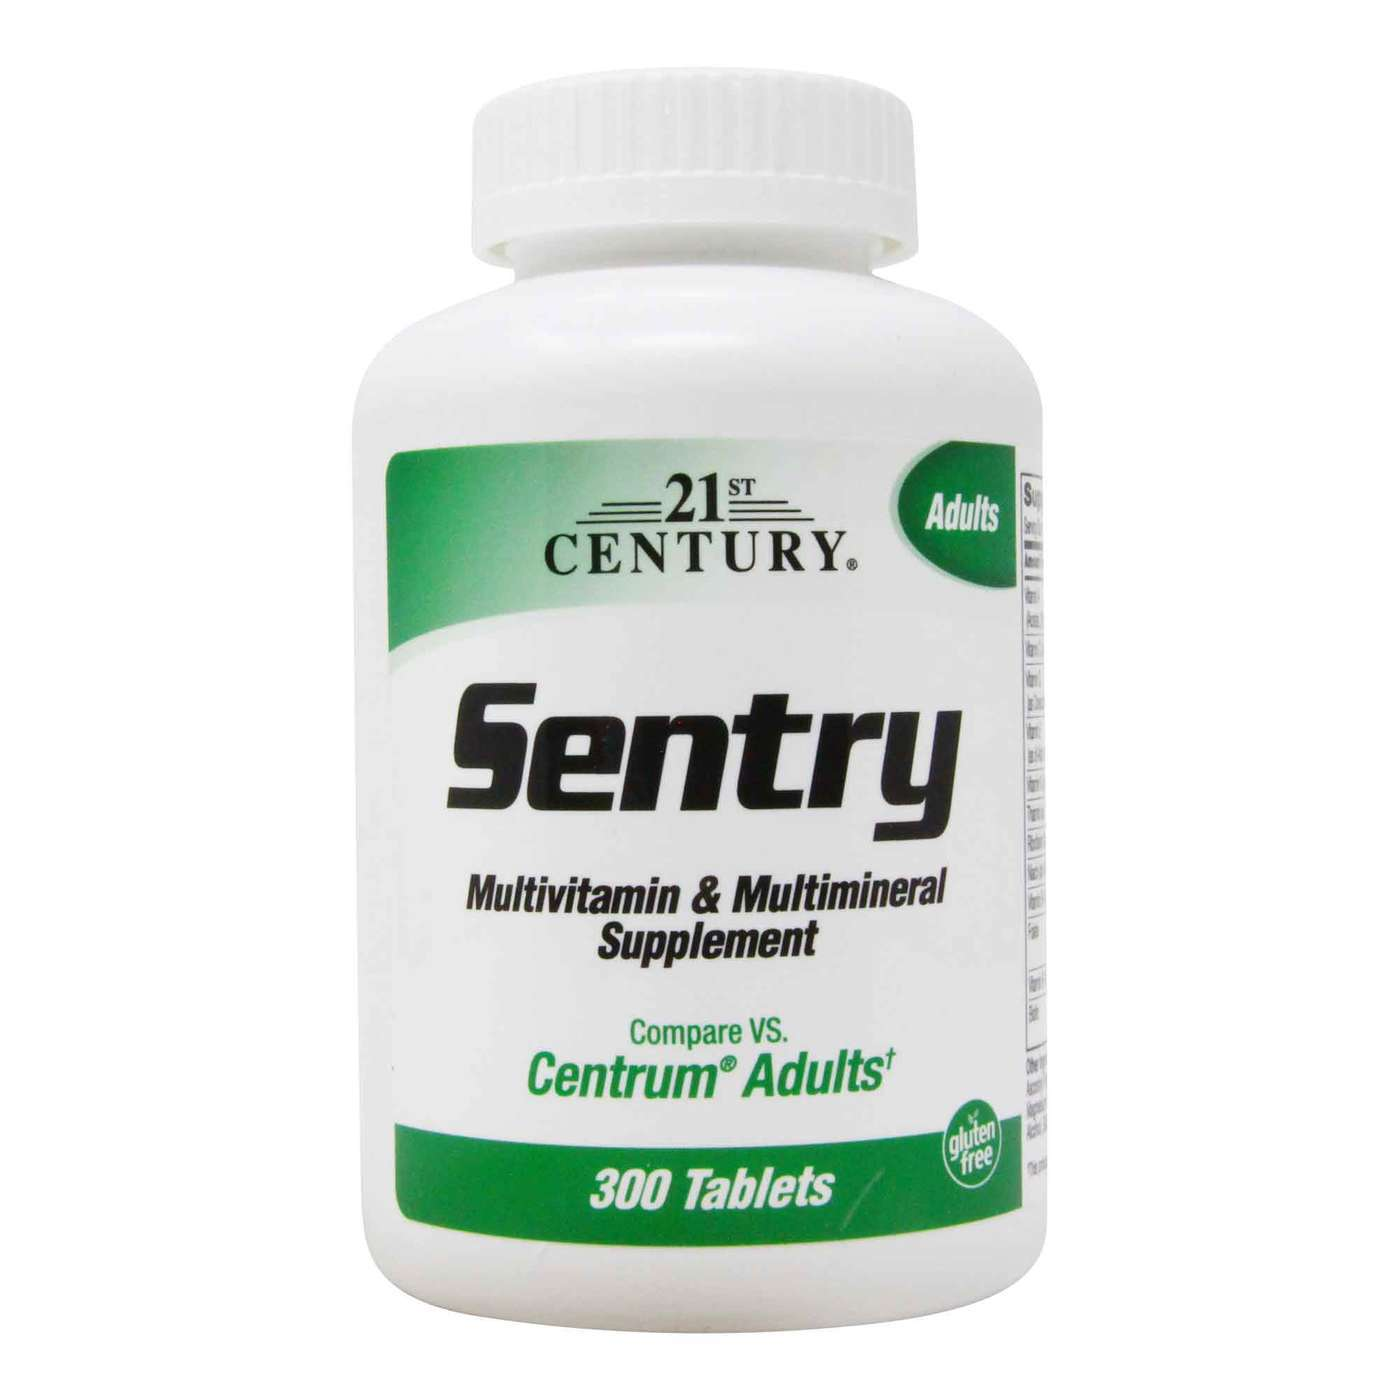 21st Century Sentry Multivitamin Multimineral Supplement 300 Tablets Evitamins Com